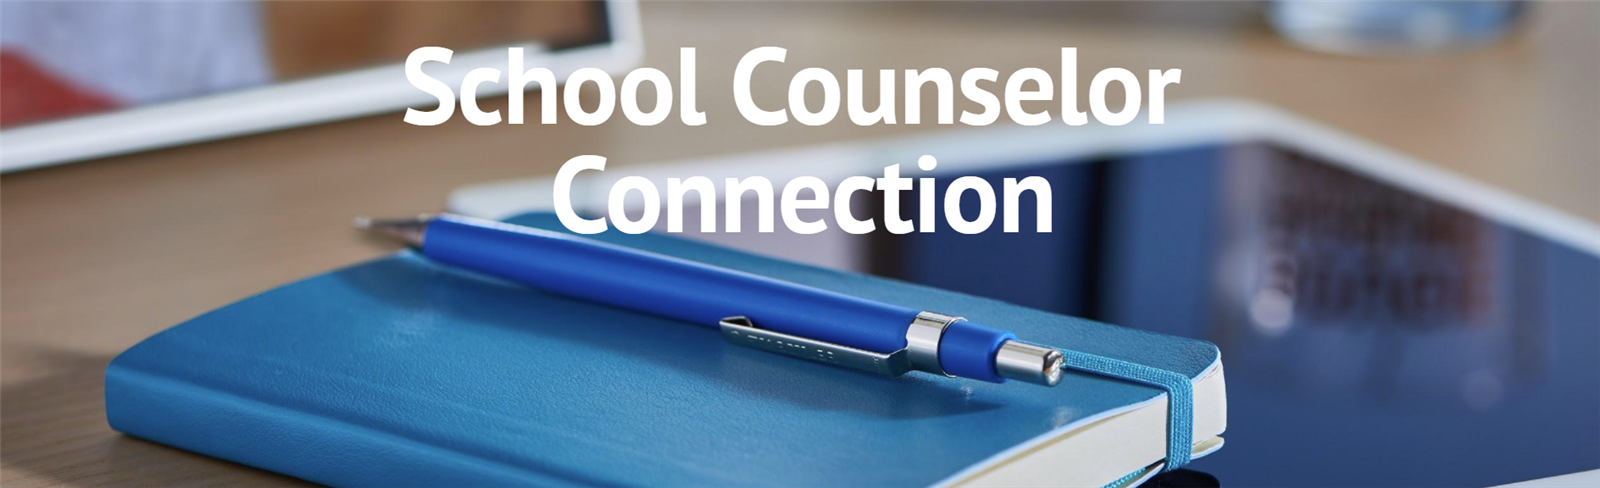 School Counselor Connection